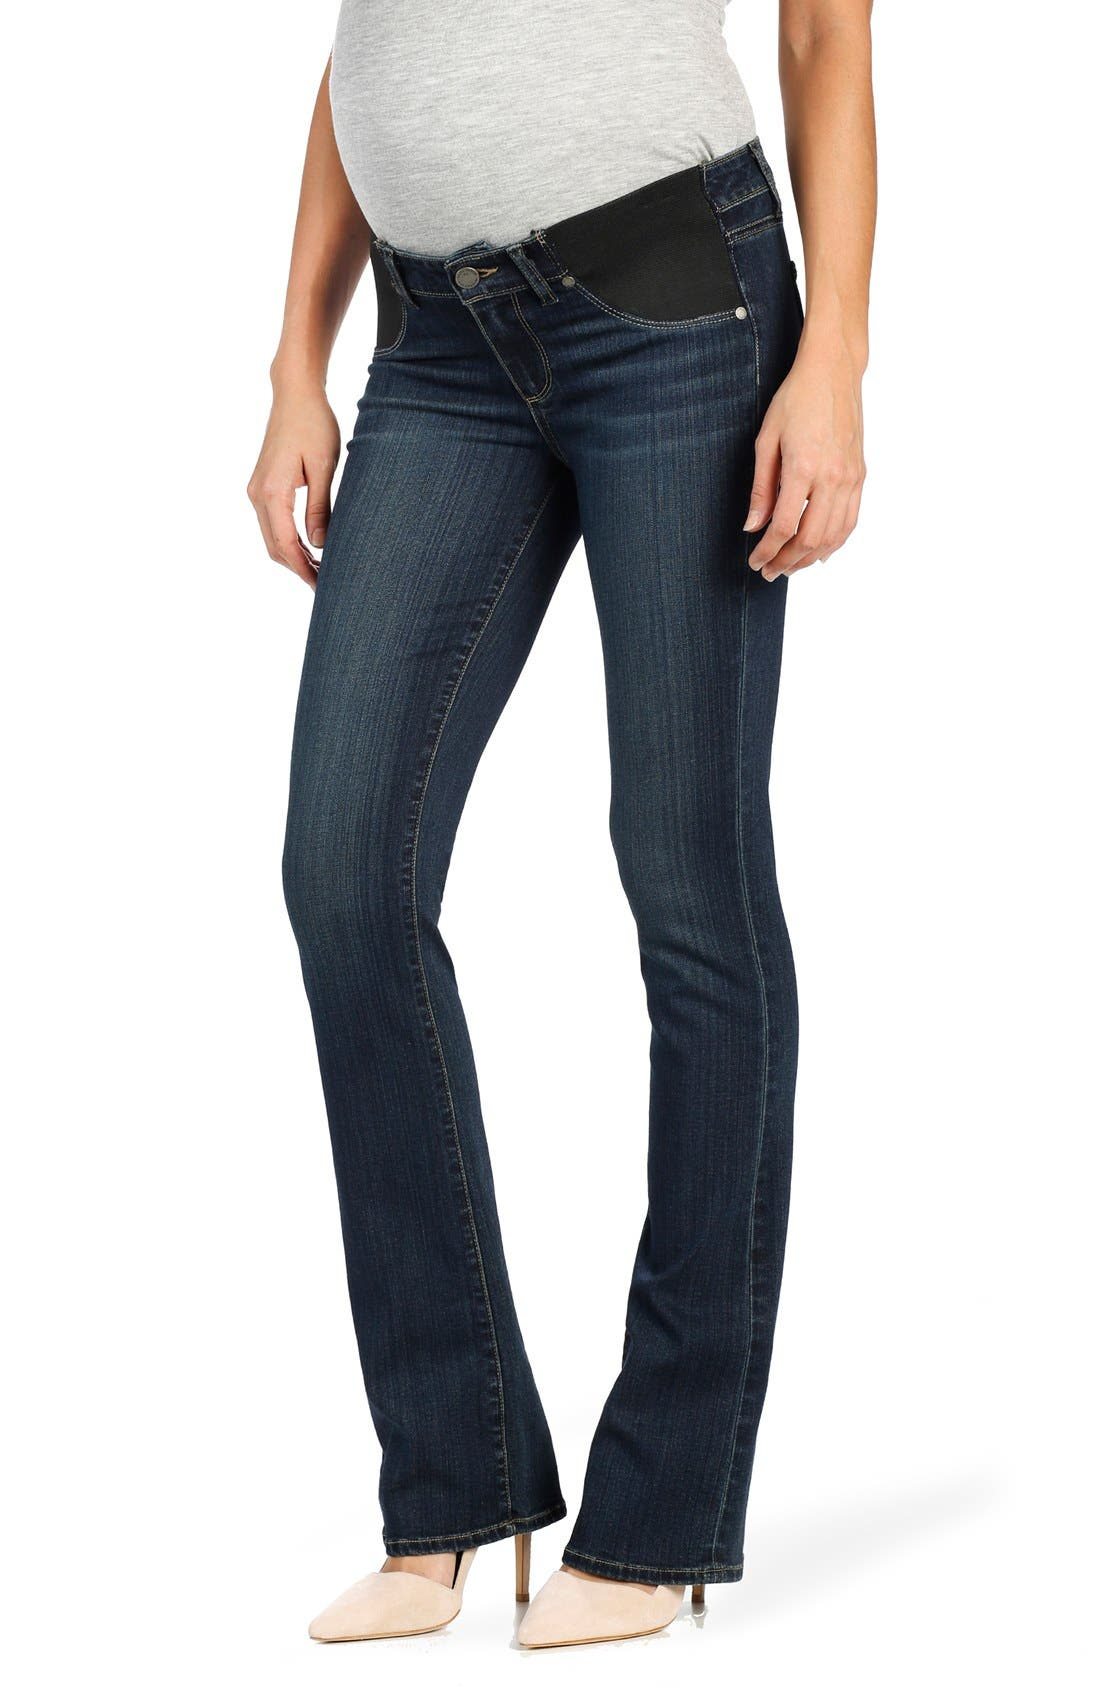 Next bootcut maternity jeans